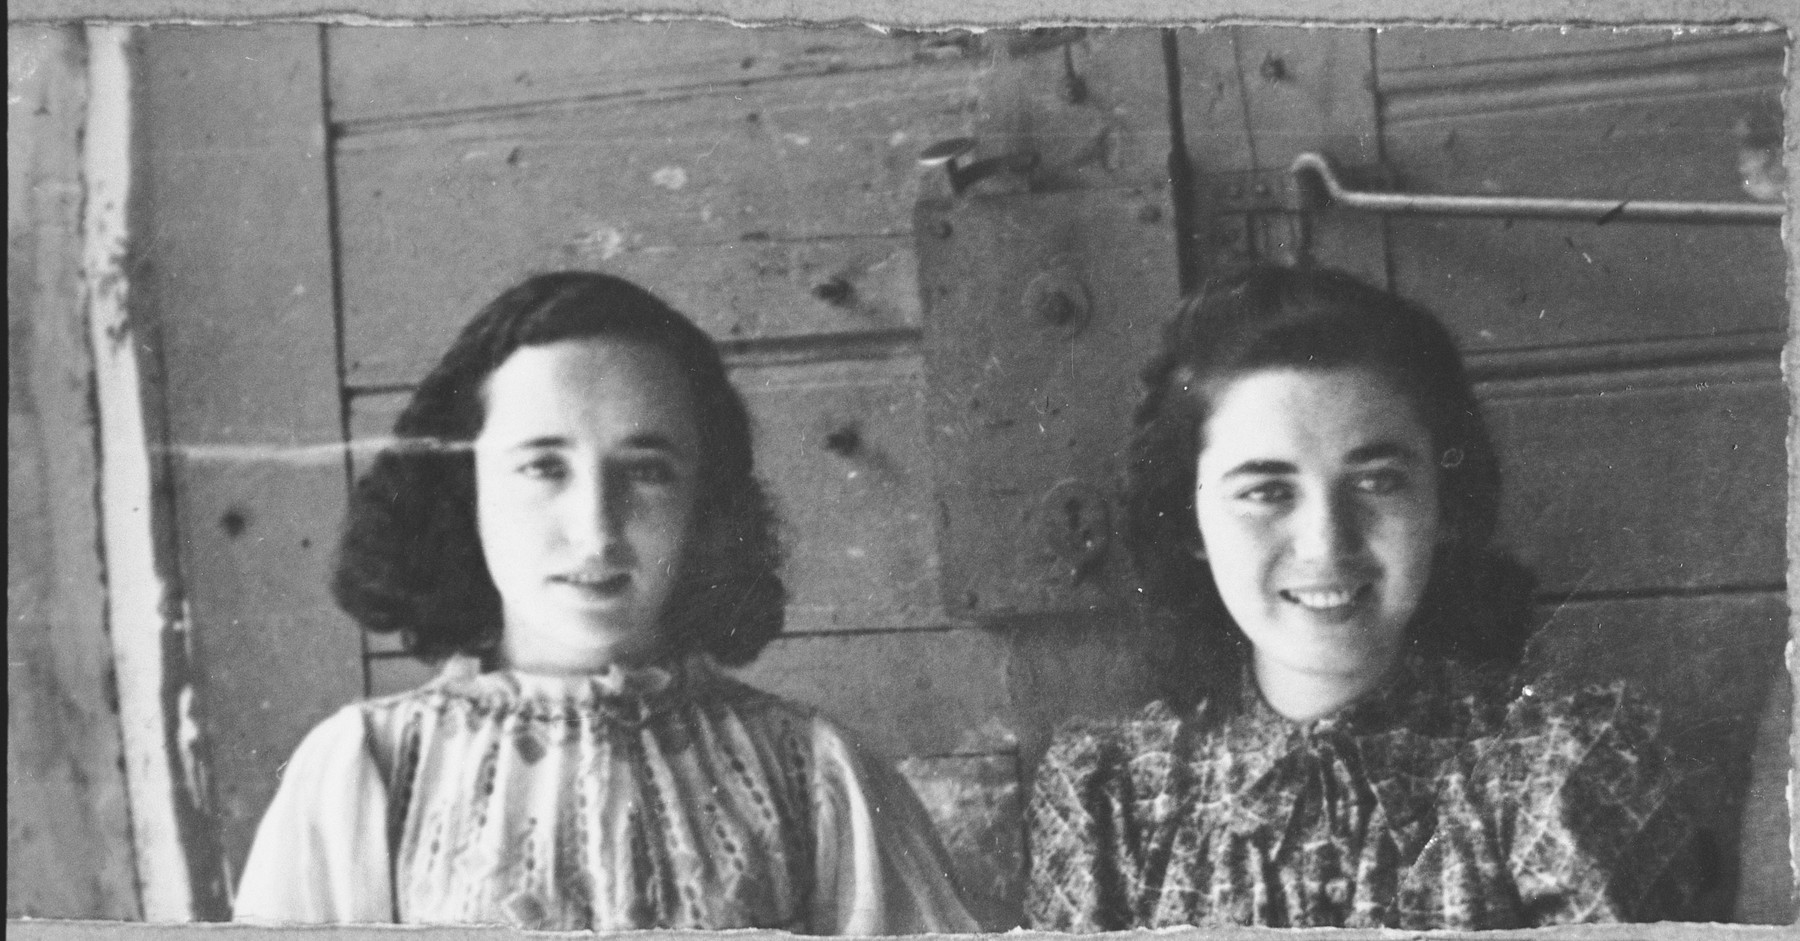 Portrait of Reina Shami and Ana Shami, daughters of Samuel Shami.  They were students.  They lived at Ferisovatska 22 in Bitola.